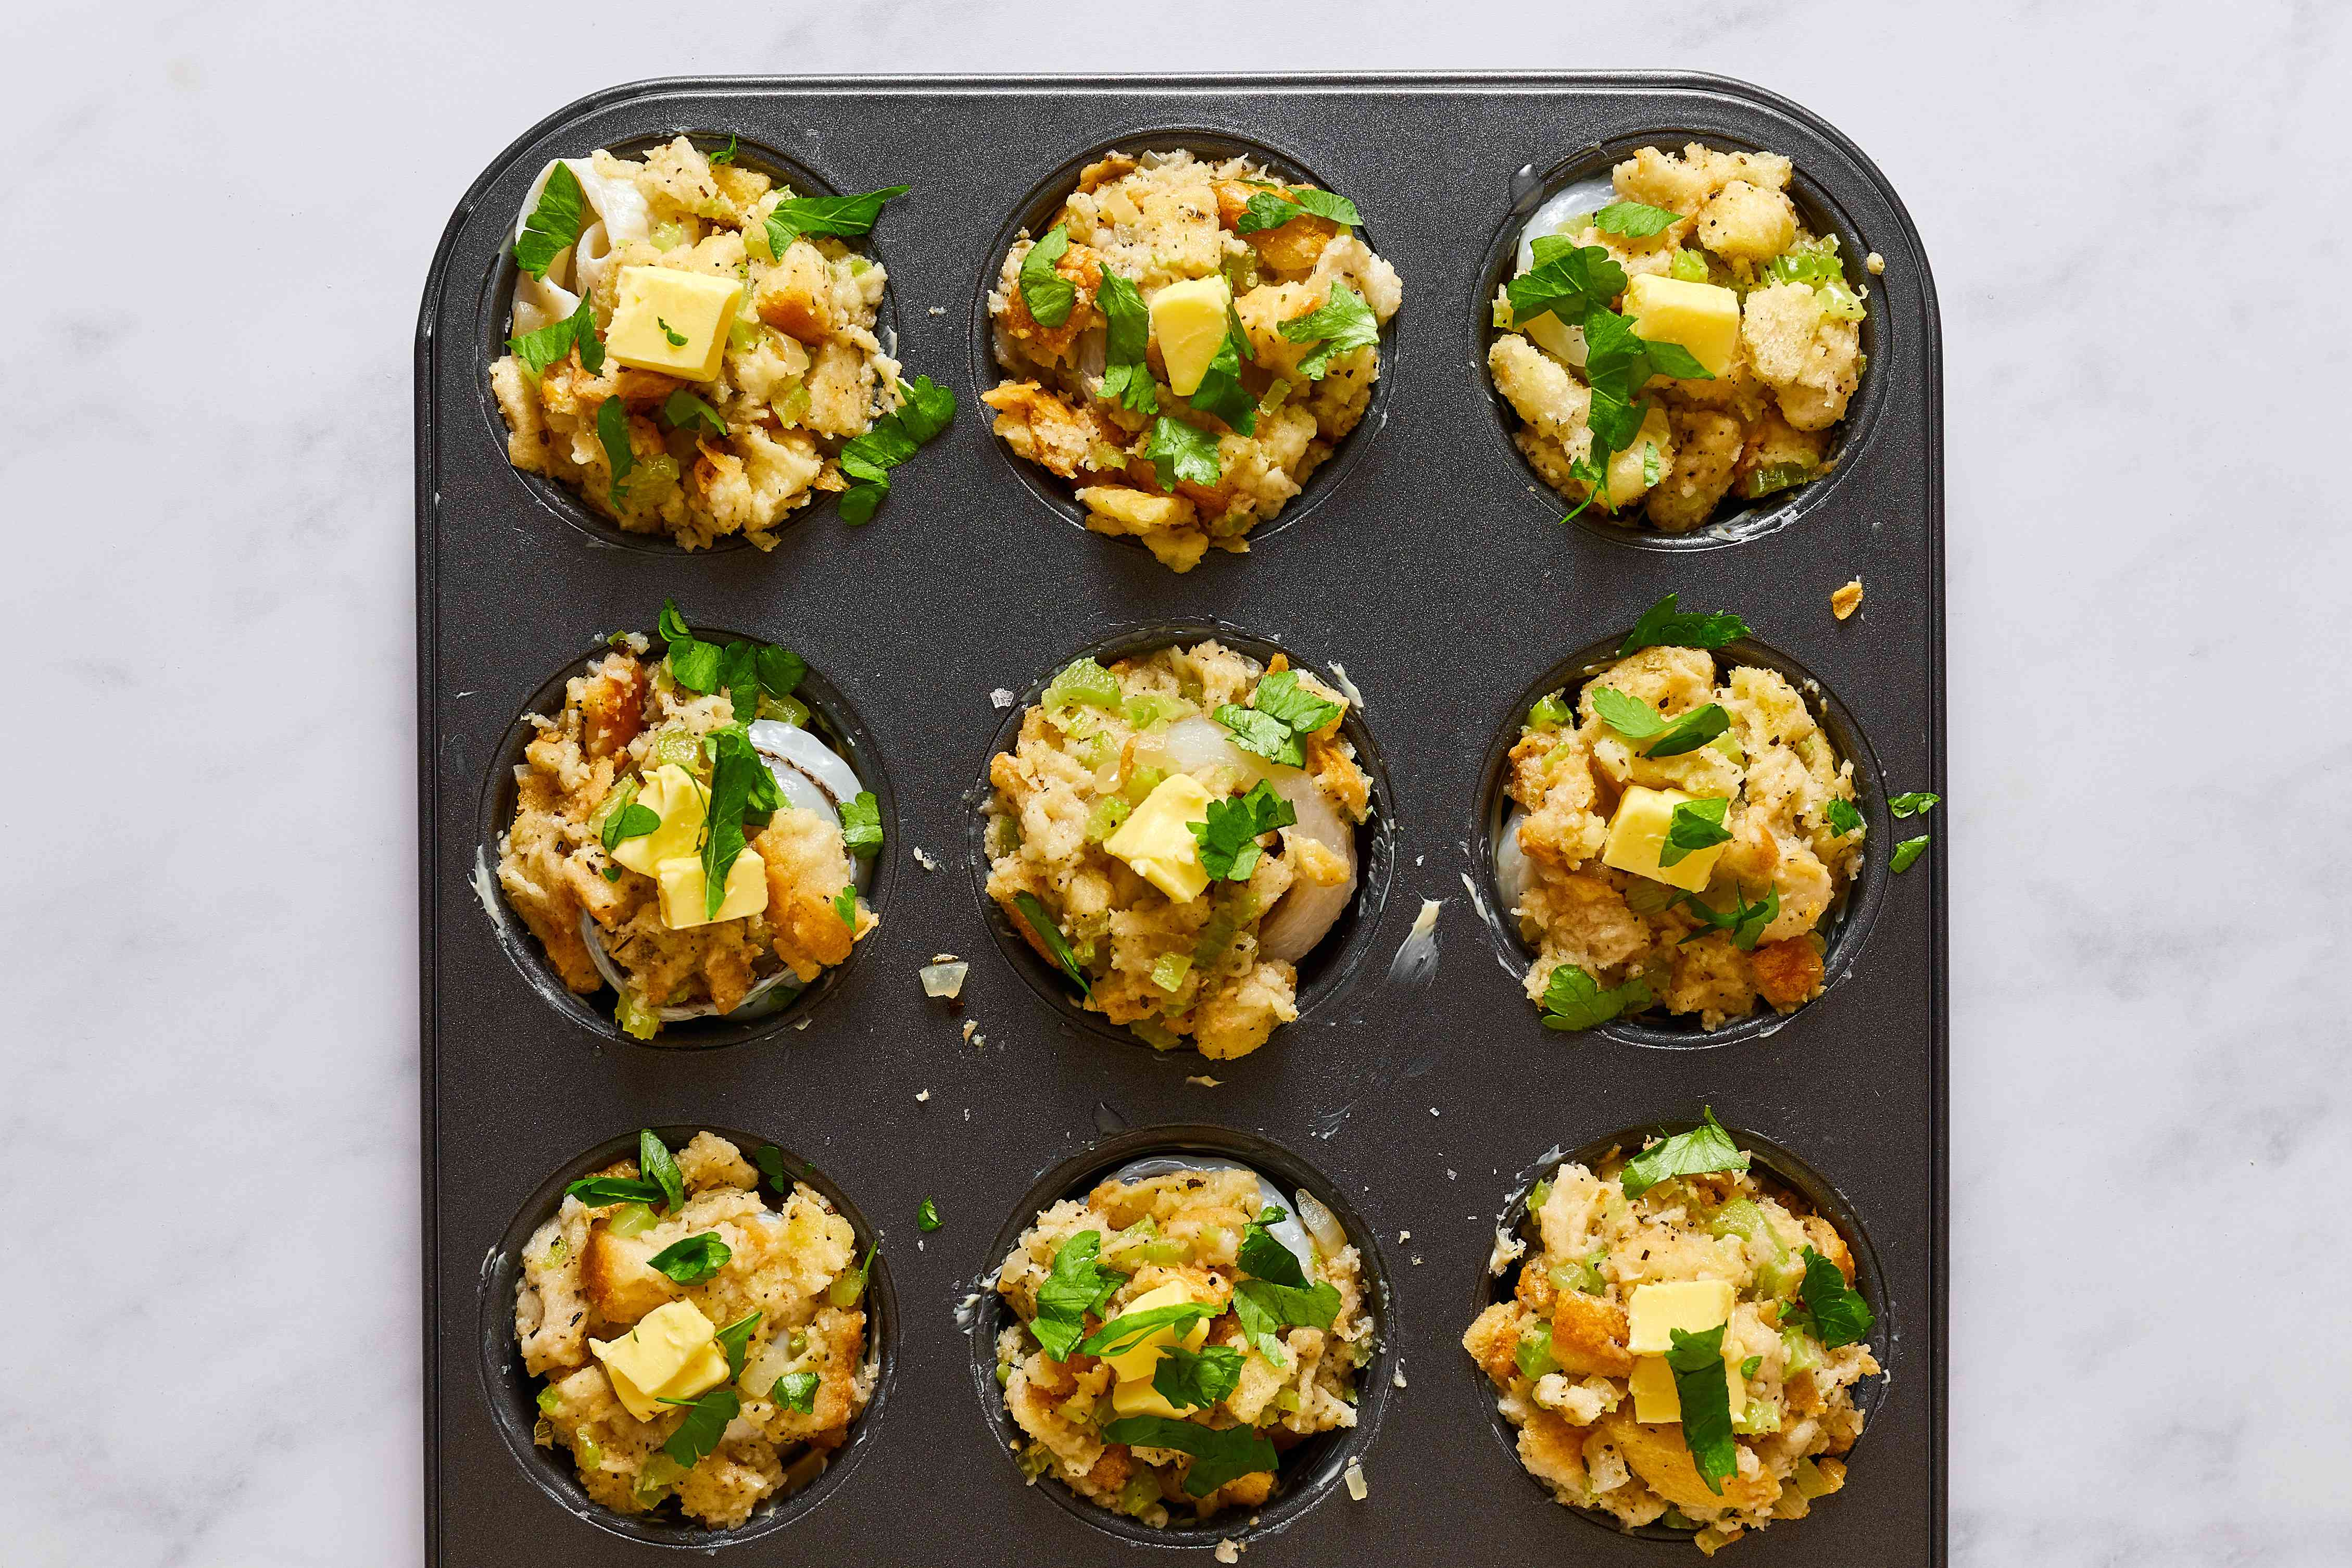 Sprinkle the stuffing in the muffin tins with chopped parsley